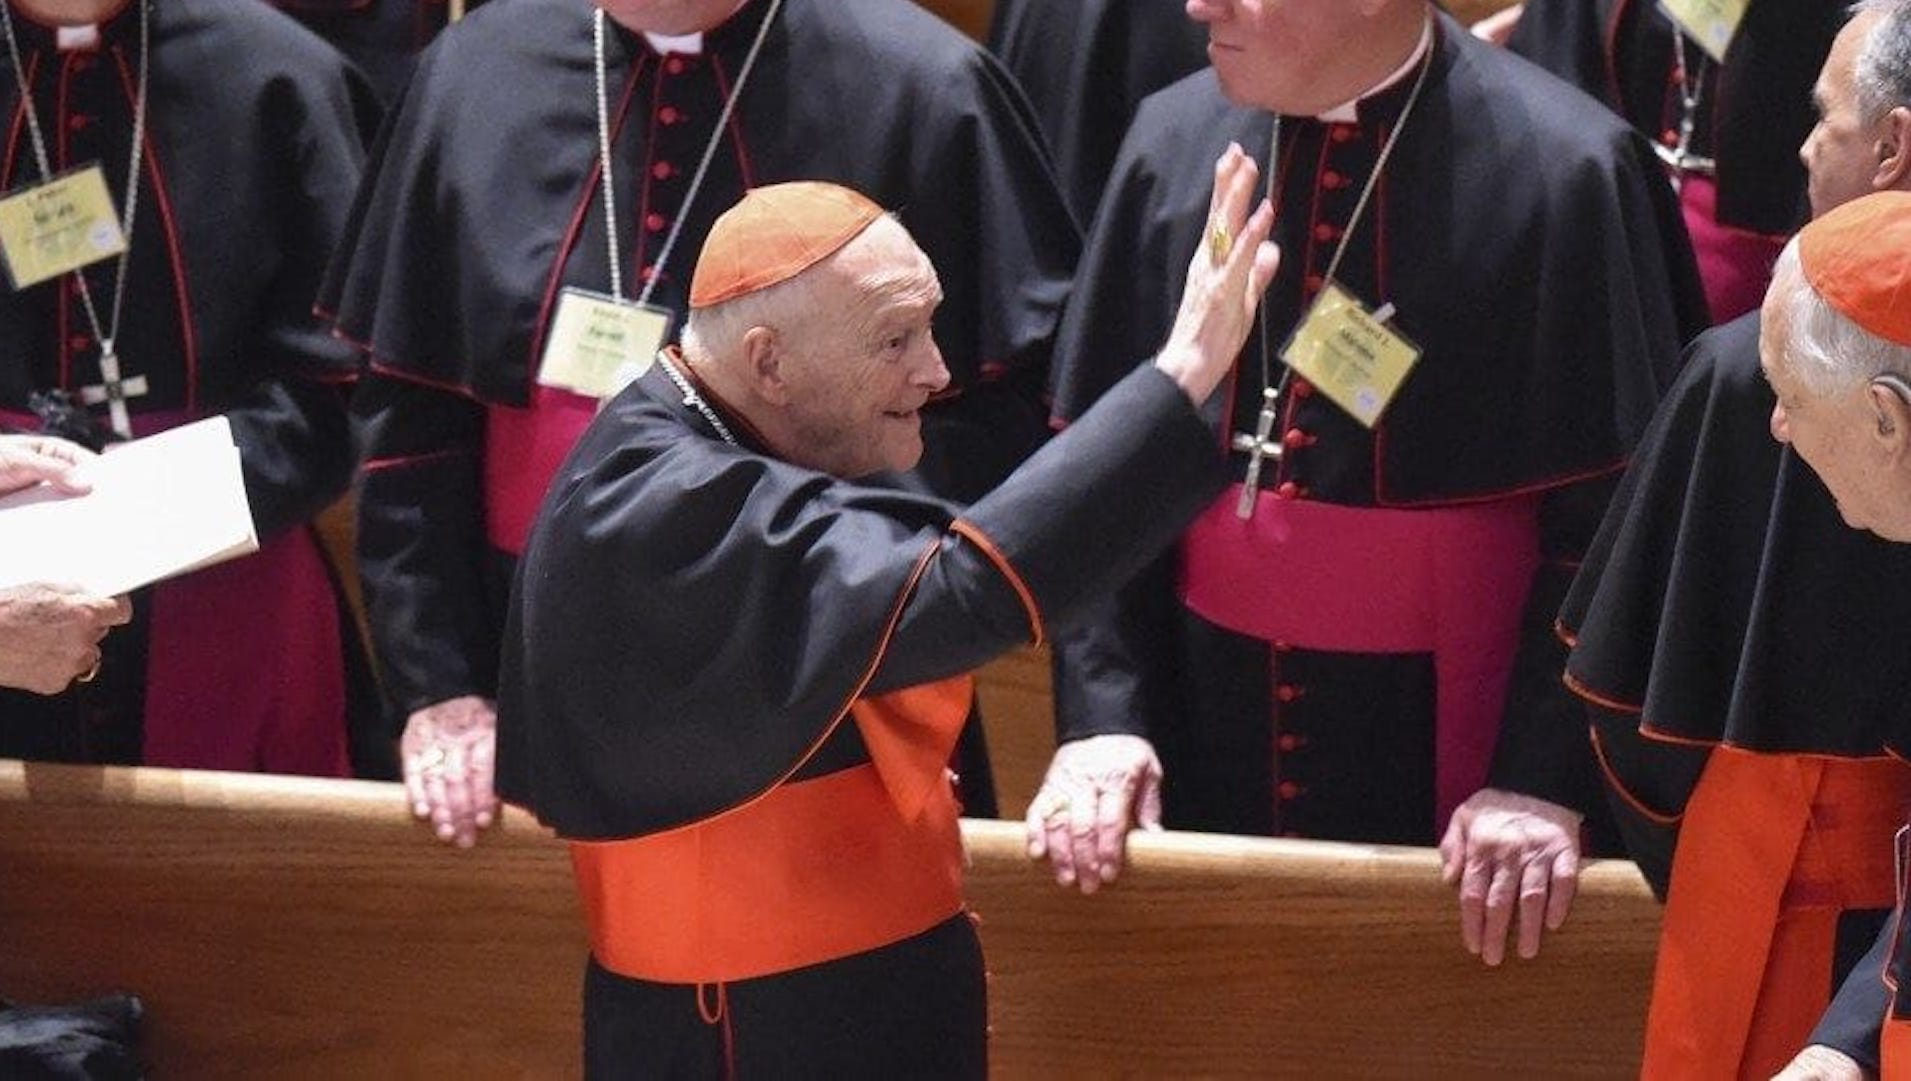 Former Vatican ambassador says Popes Francis, Benedict knew of sexual misconduct allegations against McCarrick for years